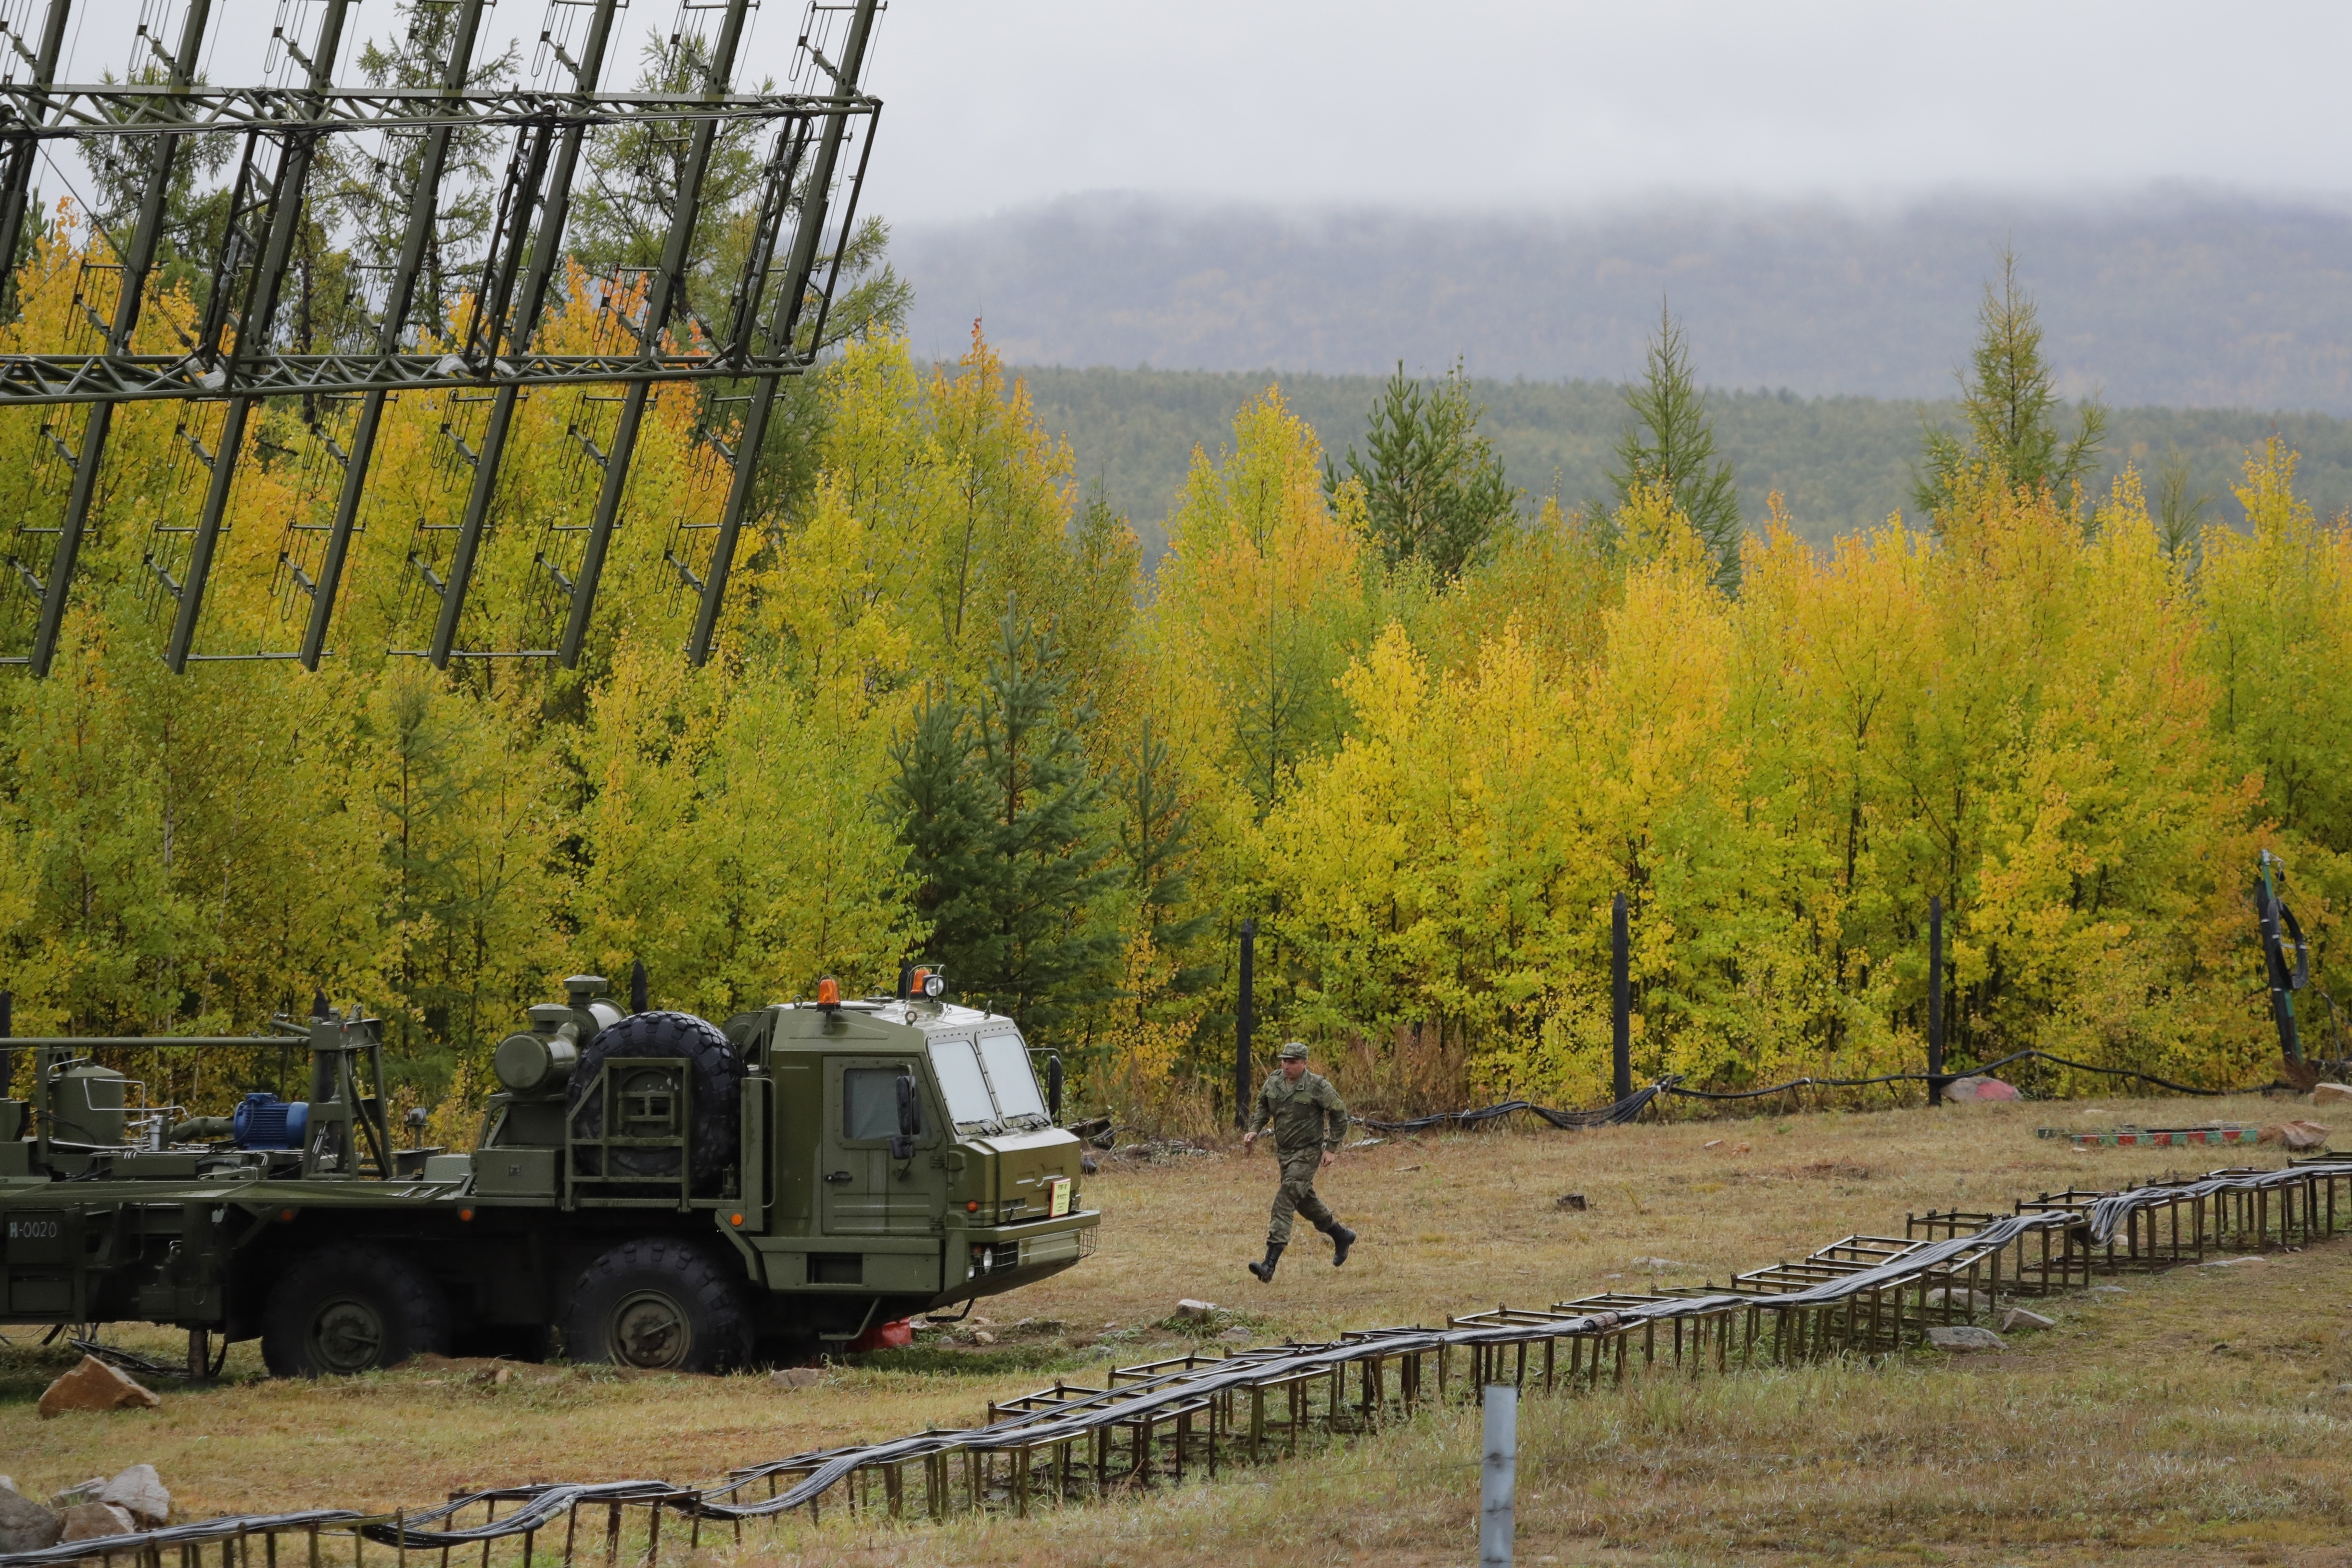 A Russian soldier runs towards a Nebo-M radar deployed by a forest, during a military exercises on training ground